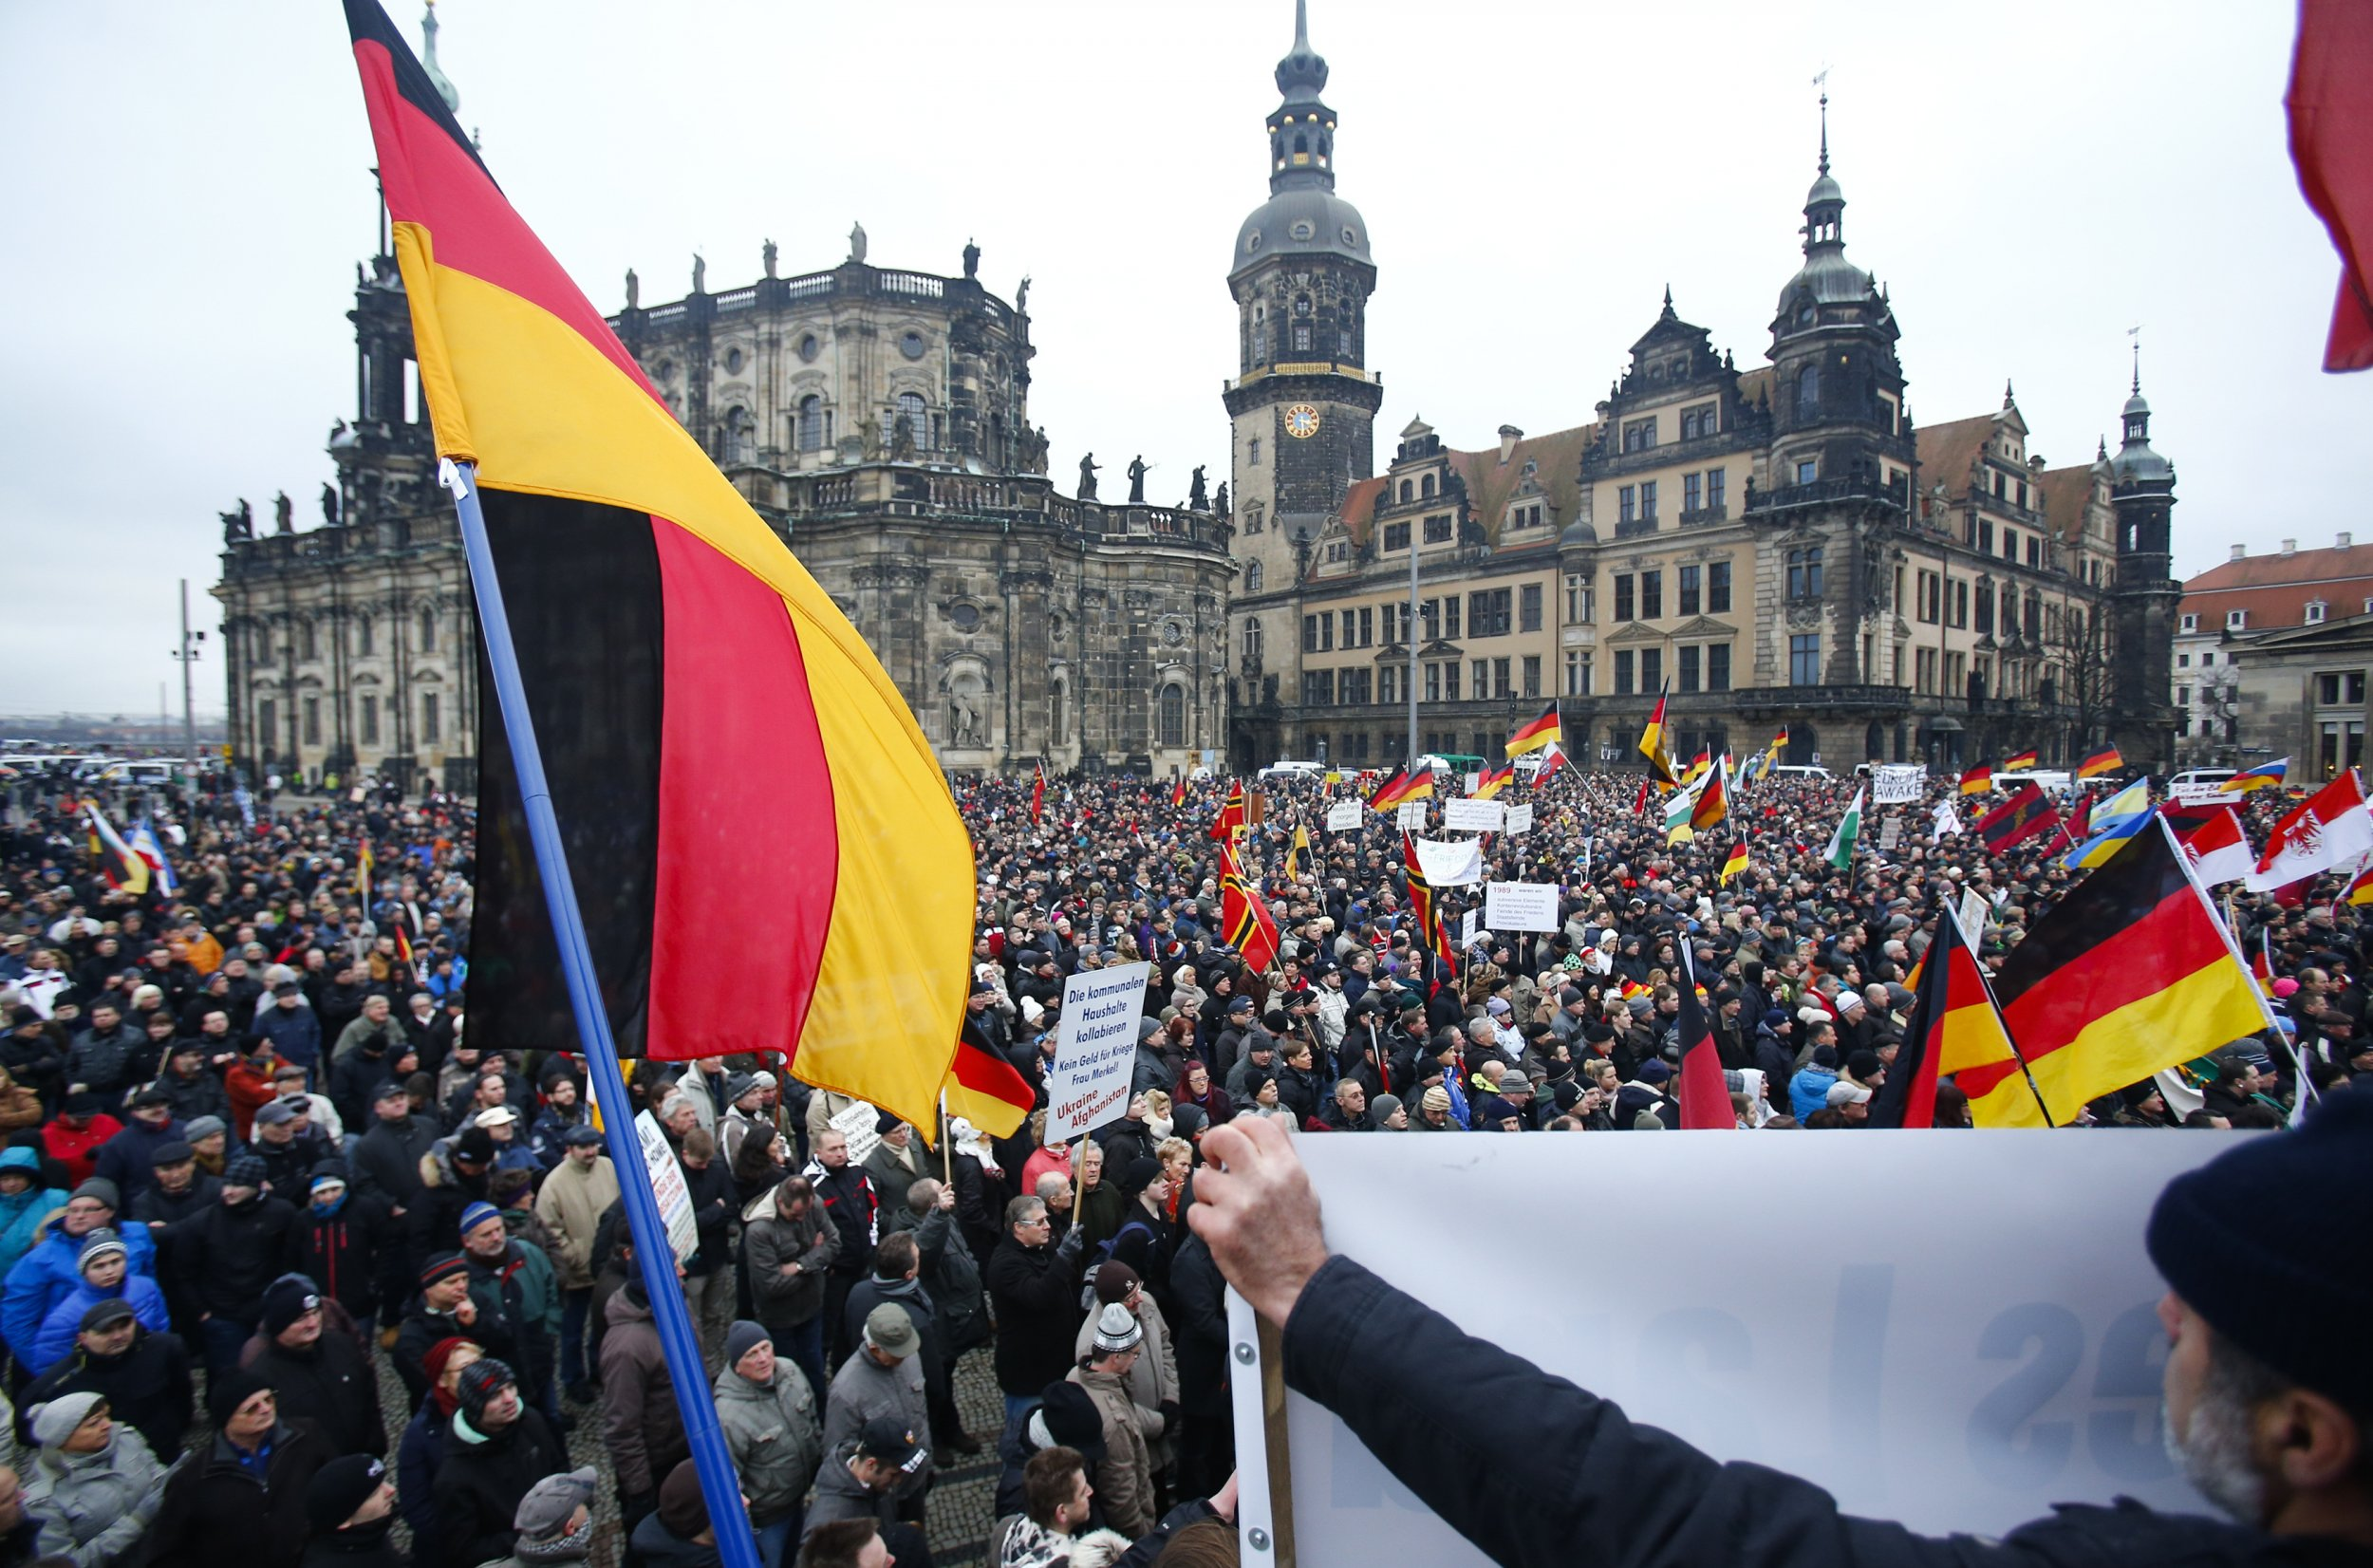 PEGIDA members demonstrate in Dresden